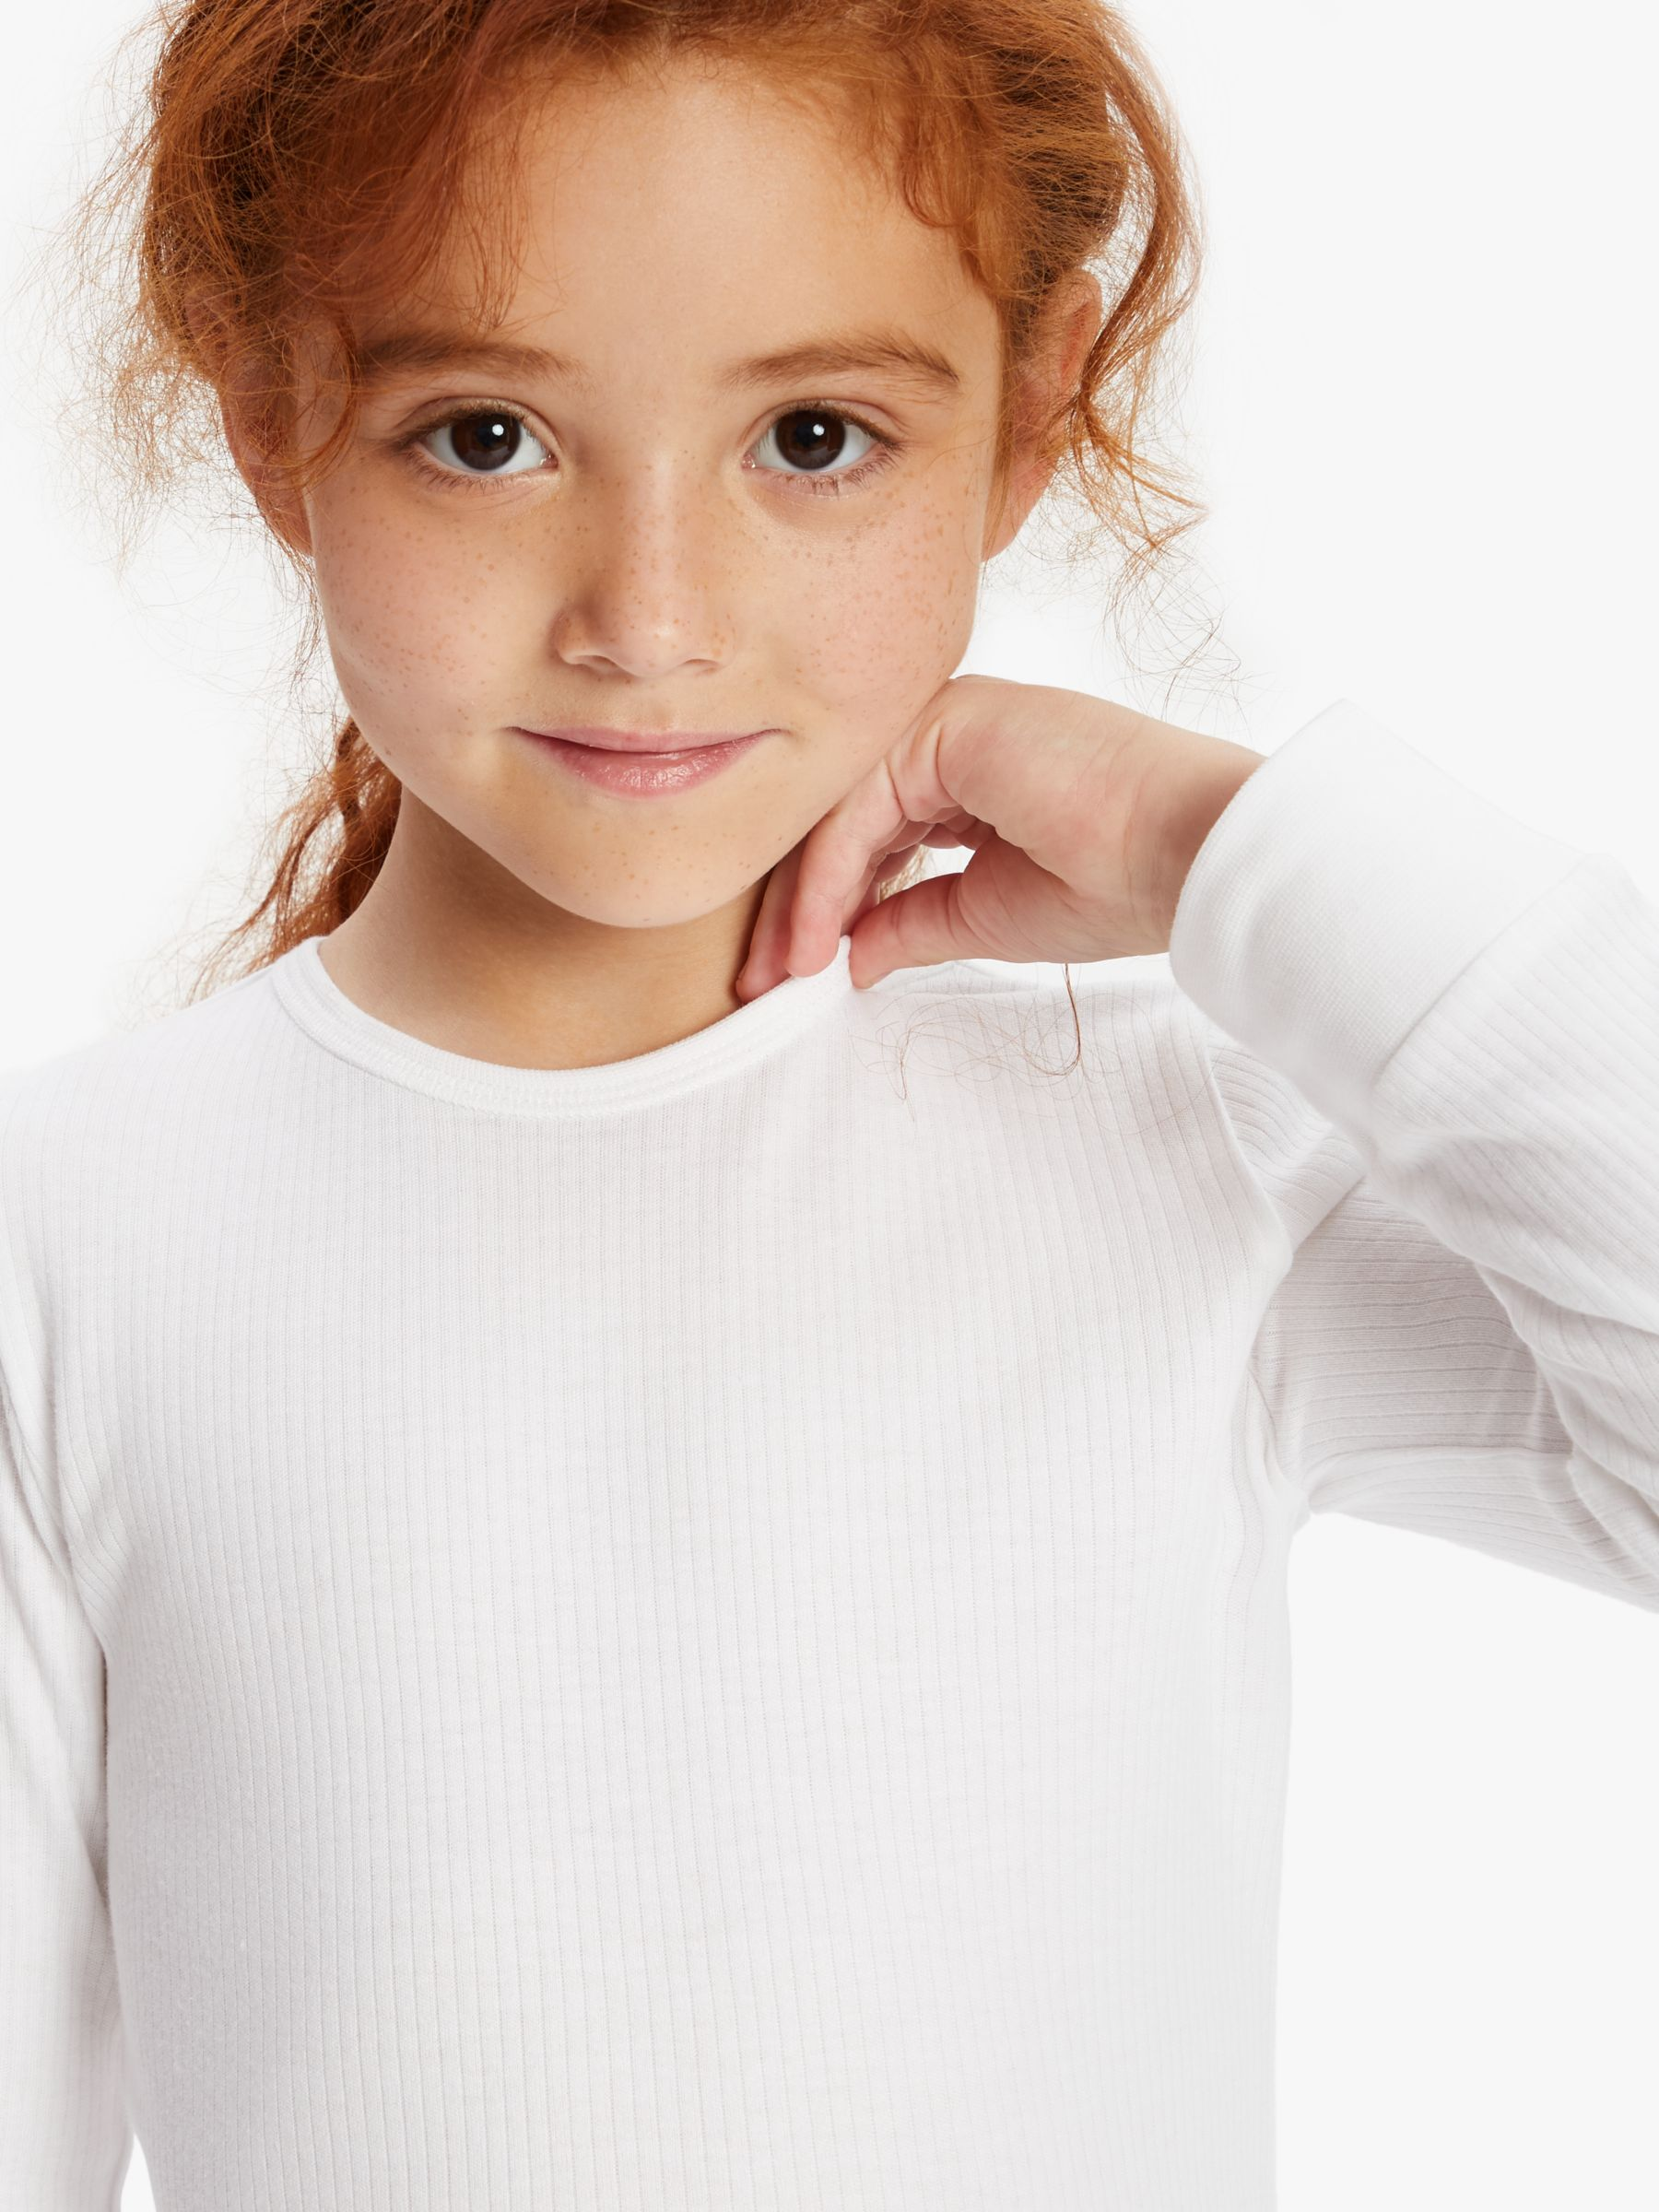 John Lewis Partners Children S Thermal Long Sleeve Top Pack Of 2 White At John Lewis Partners